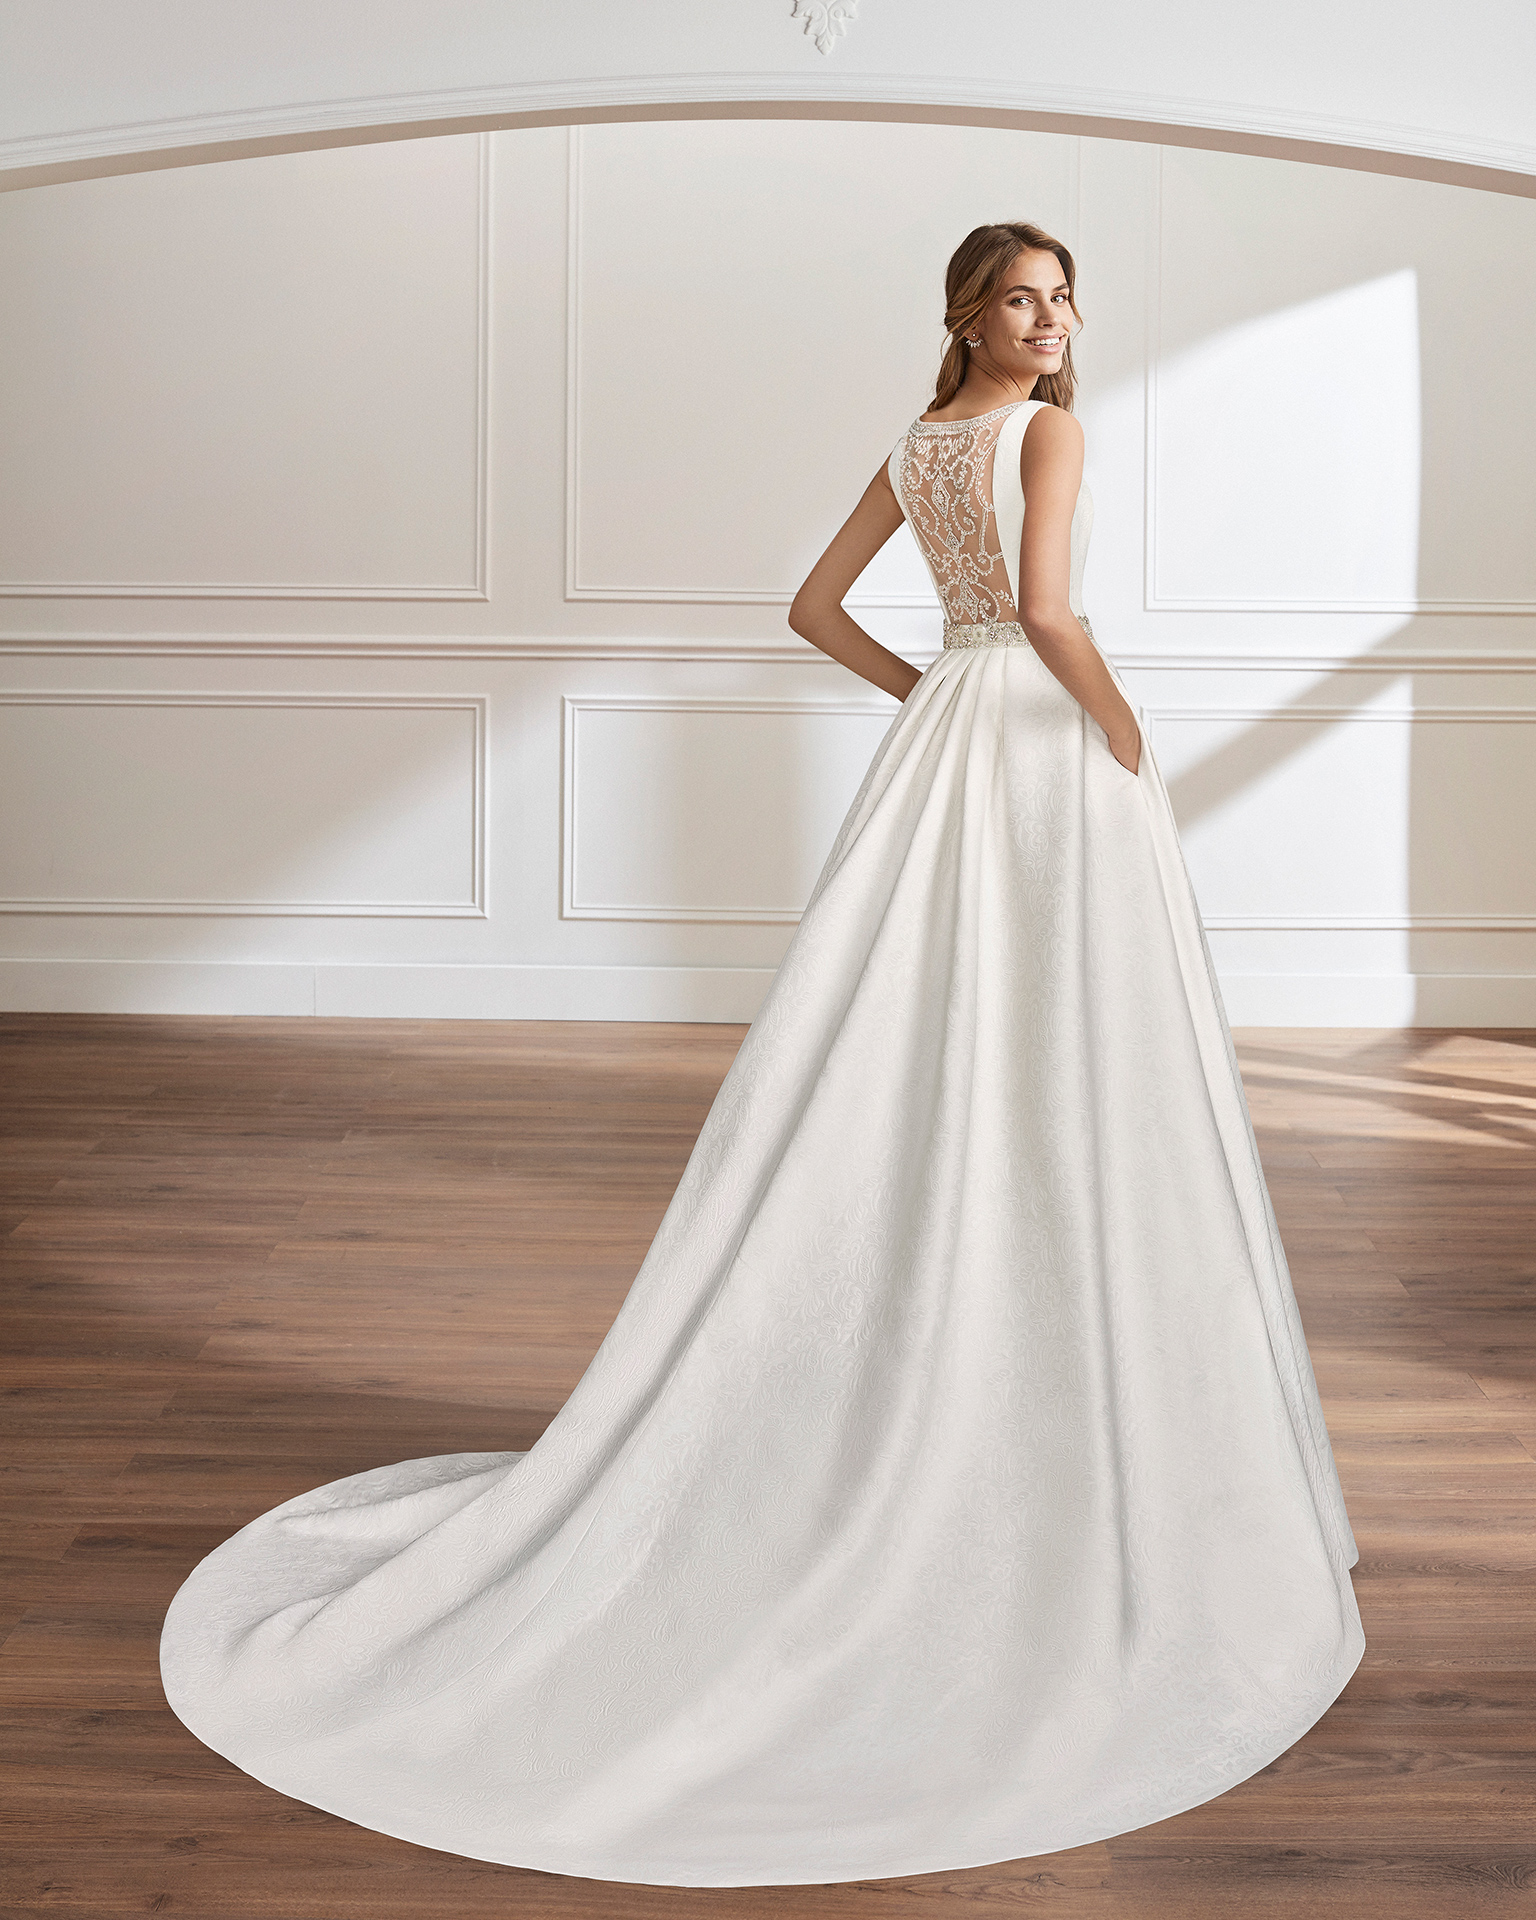 Classic-style beaded brocade wedding dress with bateau neckline, pockets, beaded back and beaded appliqués.